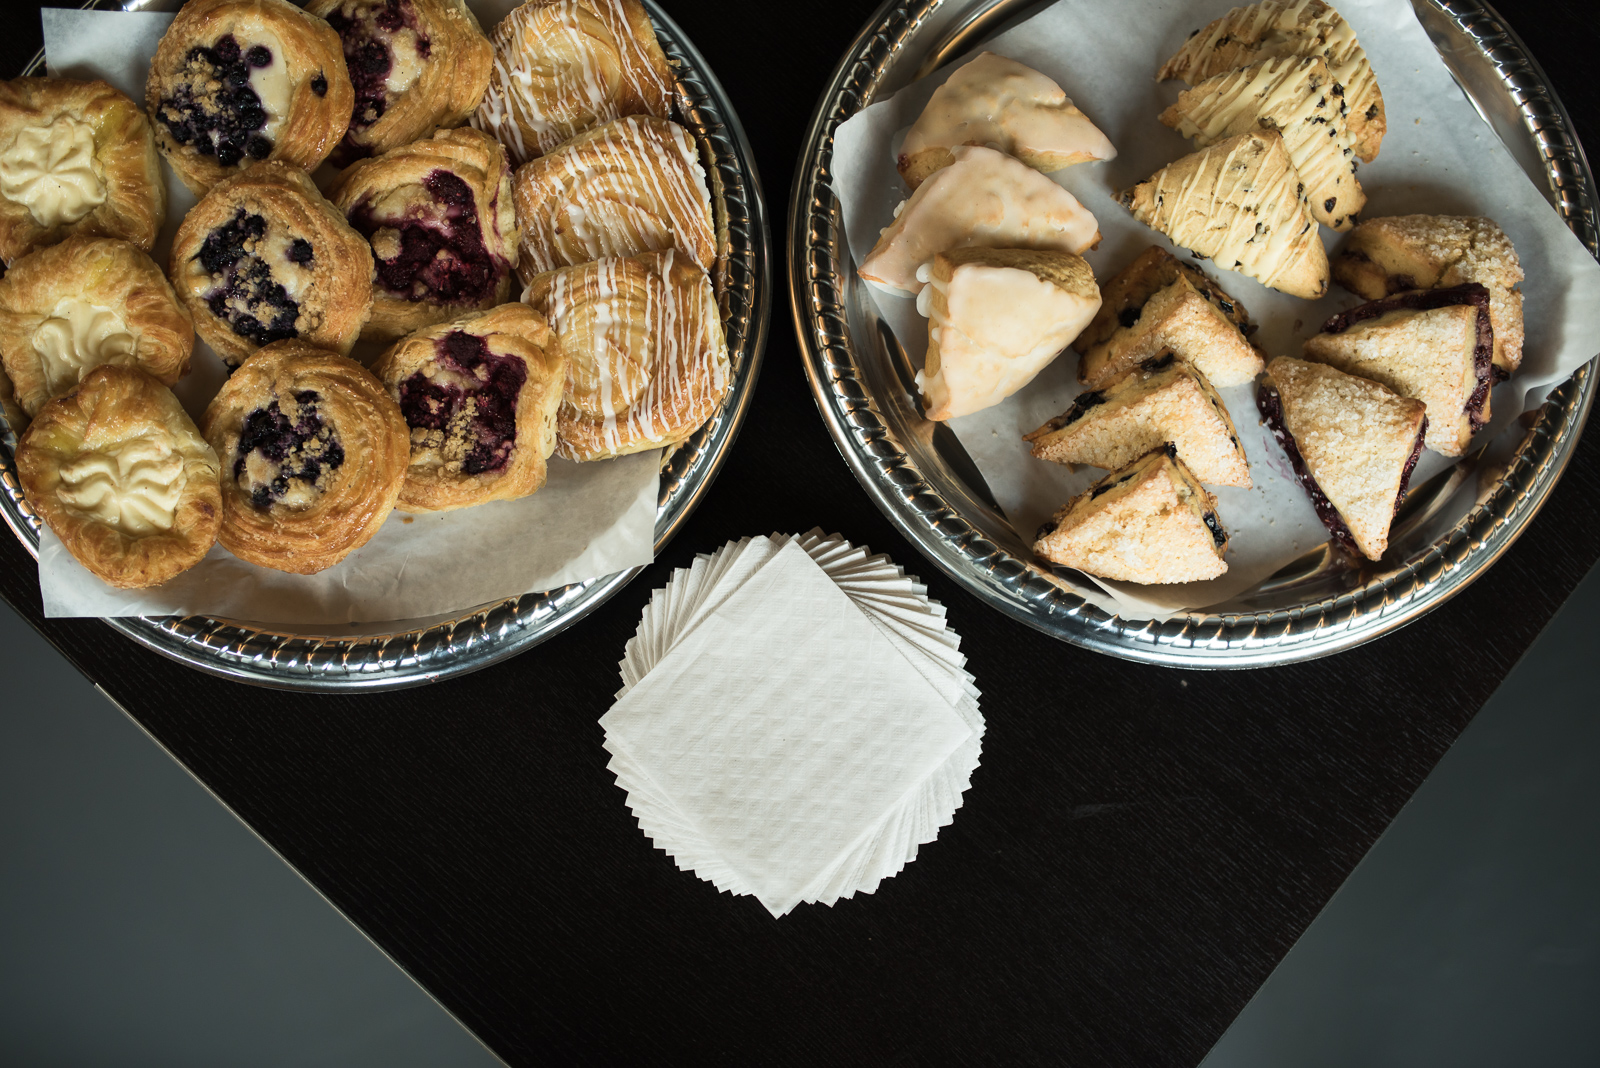 Espresso-Catering-Marsee-Pastries.jpg